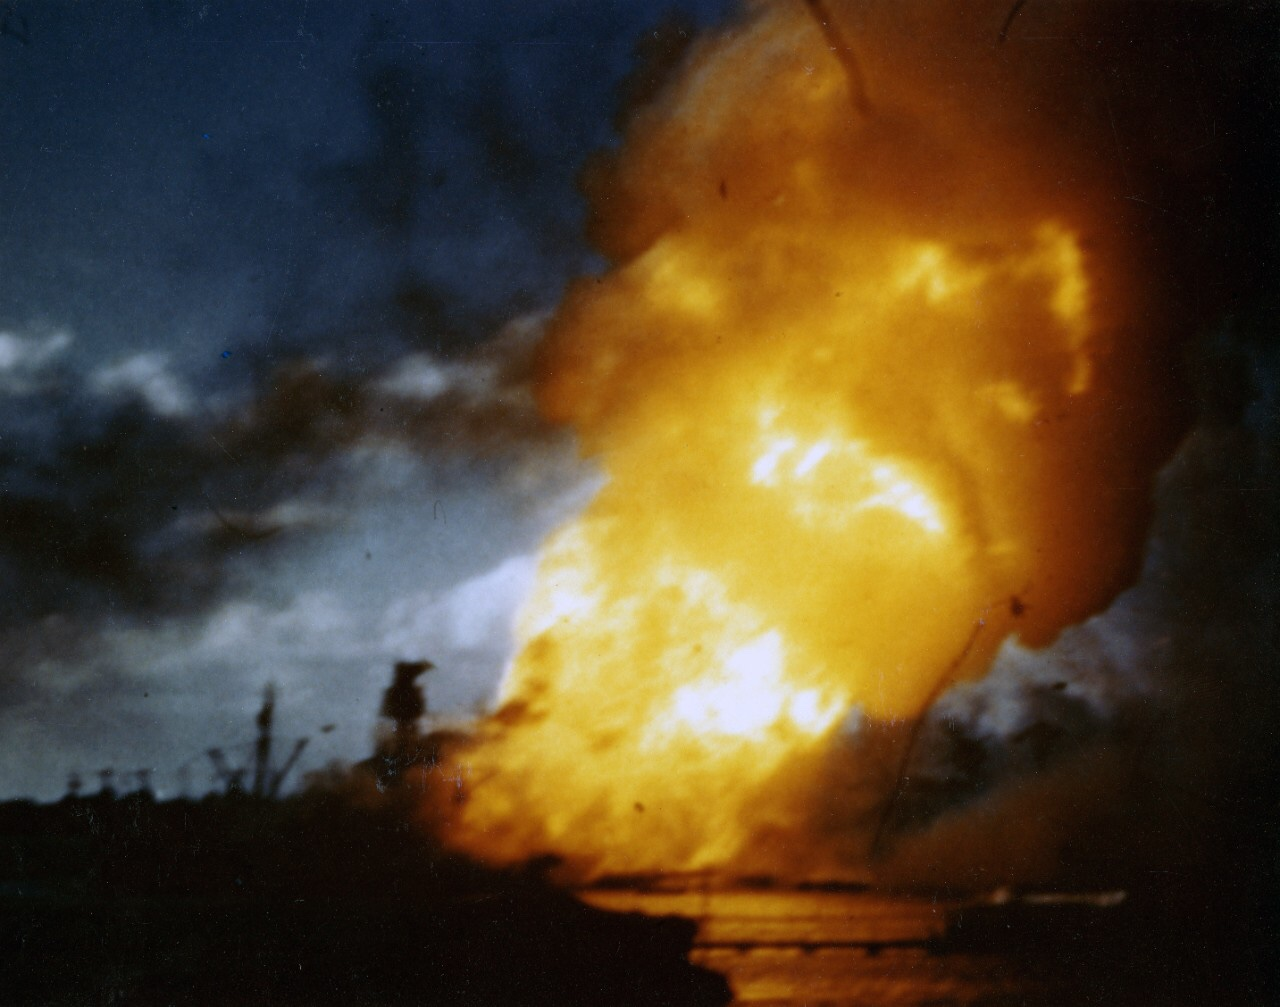 uss_arizona_bb-39_ablaze_immediately_following_the_explosion_of_her_forward_magazines_7_december_1941_frame_clipped_from_a_color_motion_picture_taken_from_on_board_uss_solace_ah-5.jpg